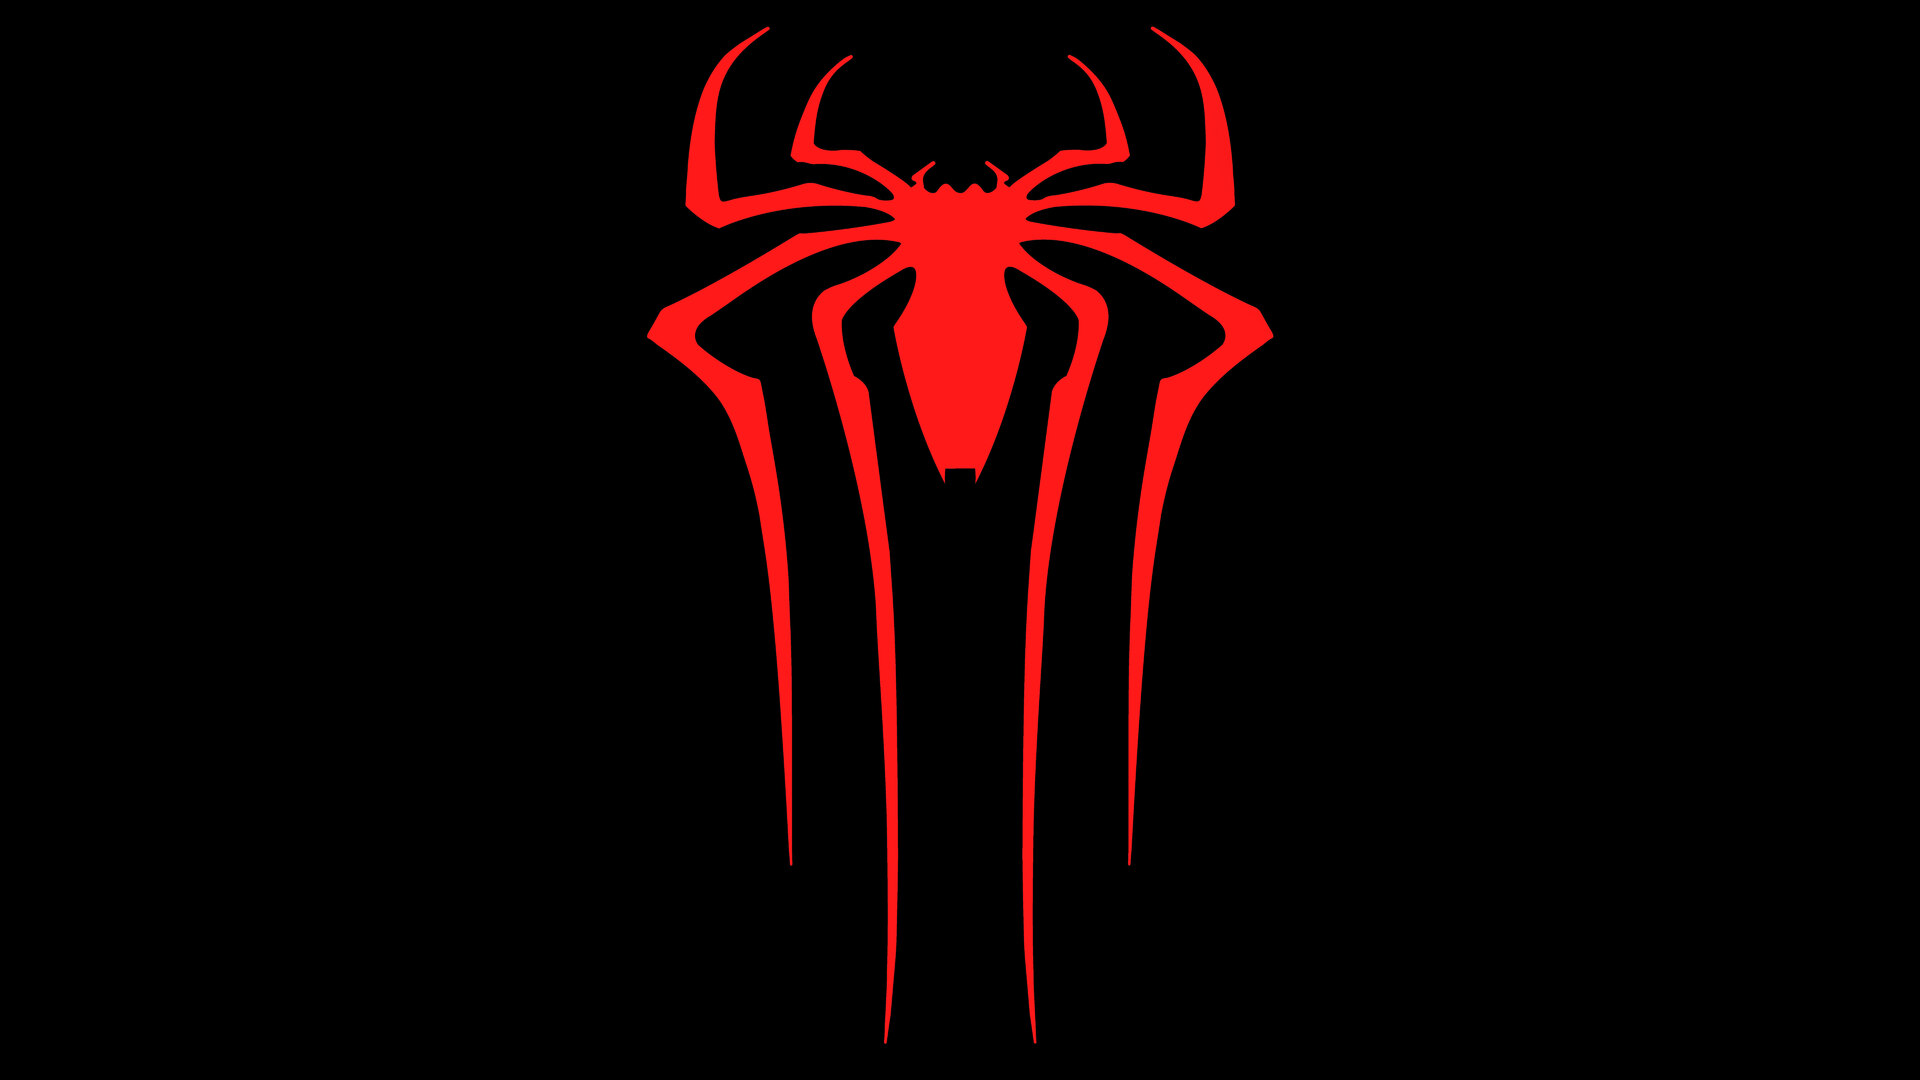 1920x1080 spiderman logo 8k laptop full hd 1080p hd 4k wallpapers